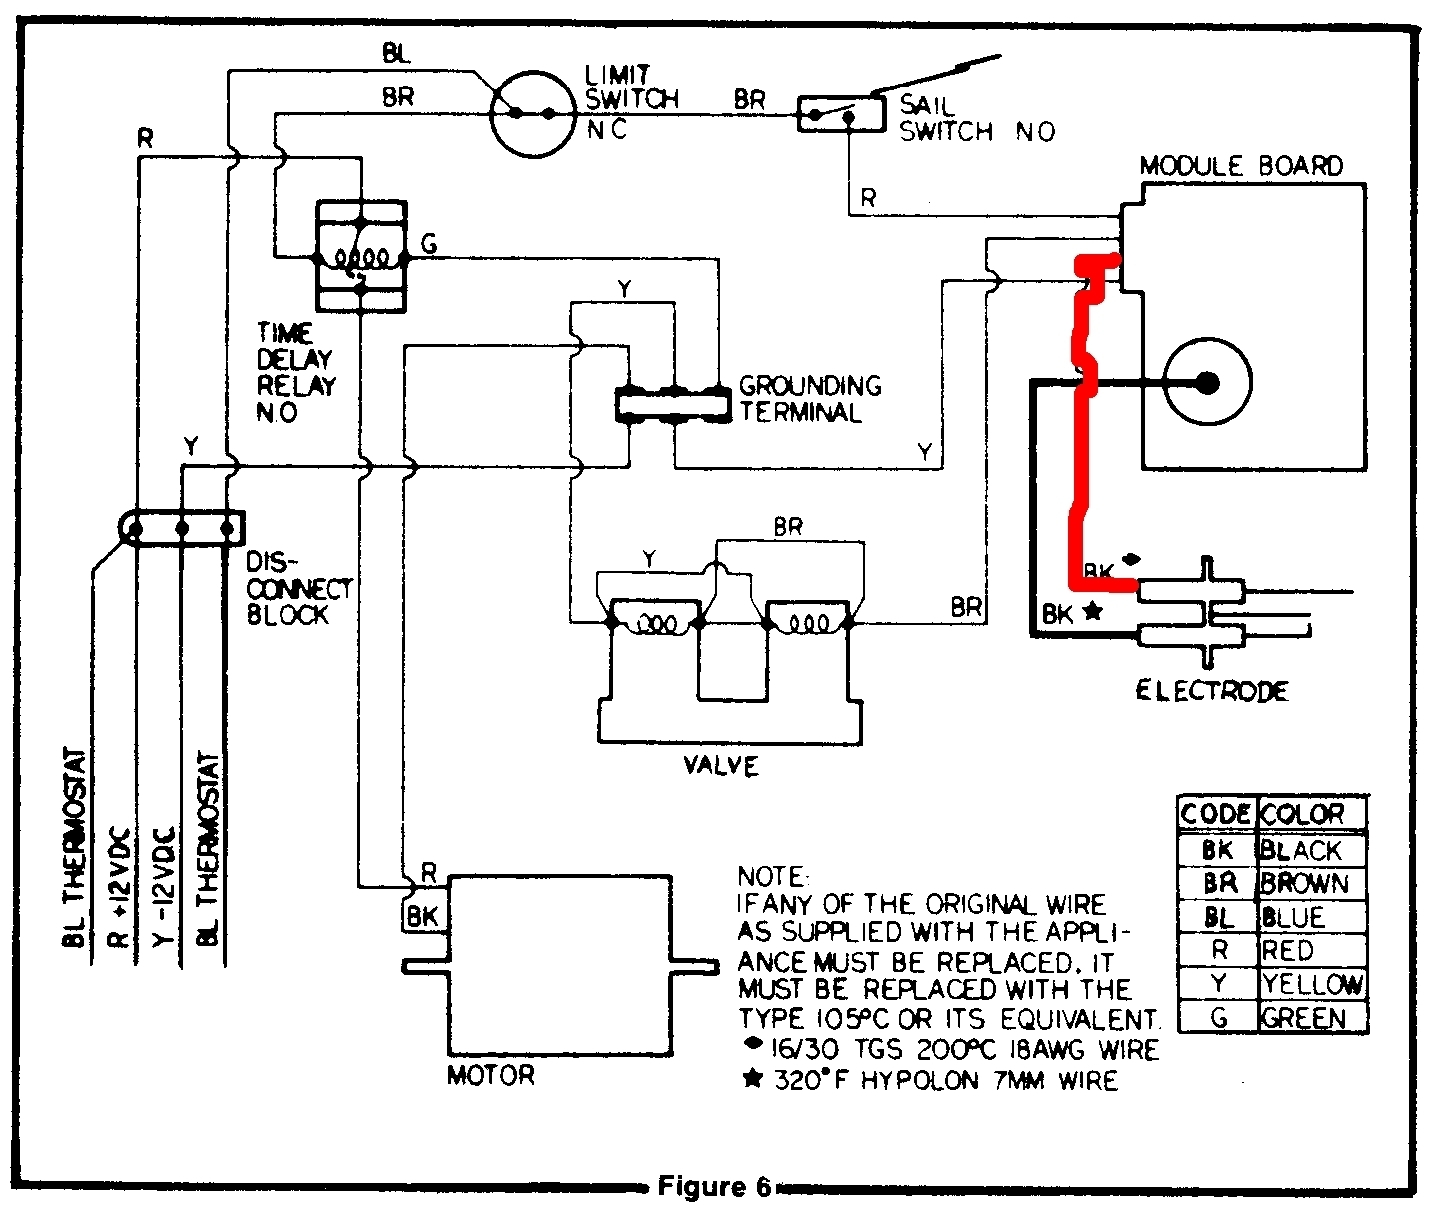 hight resolution of dometic wiring diagrams wiring diagram sheet wiring diagram for dometic rv air conditioner dometic rv thermostat